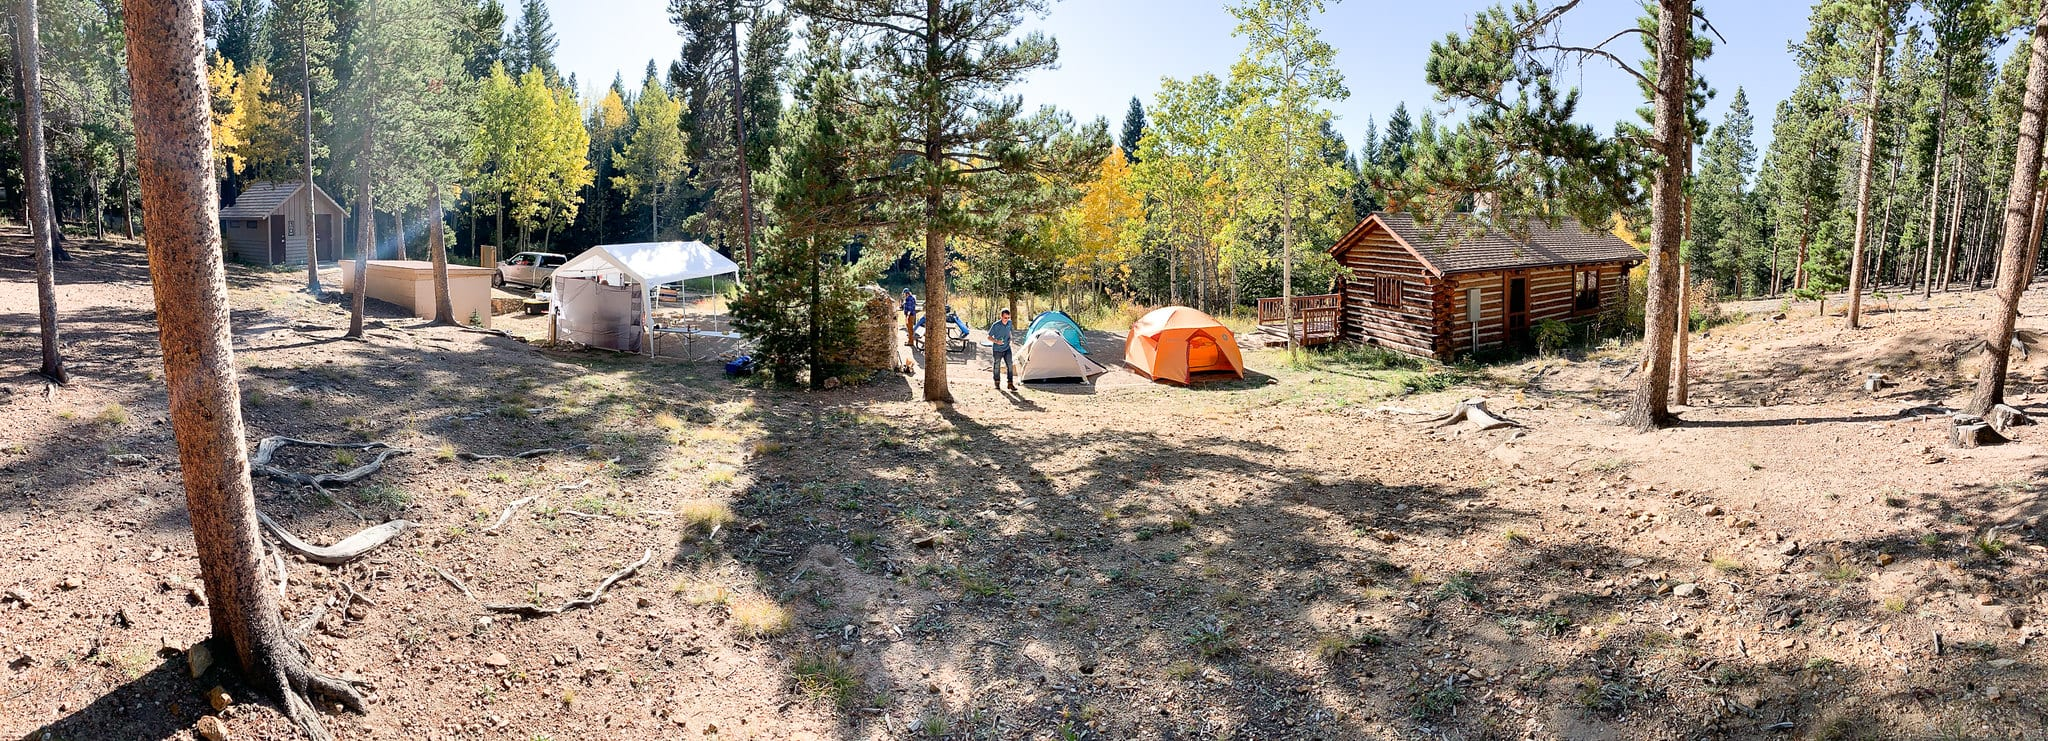 image of camping at golden gate canyon state park